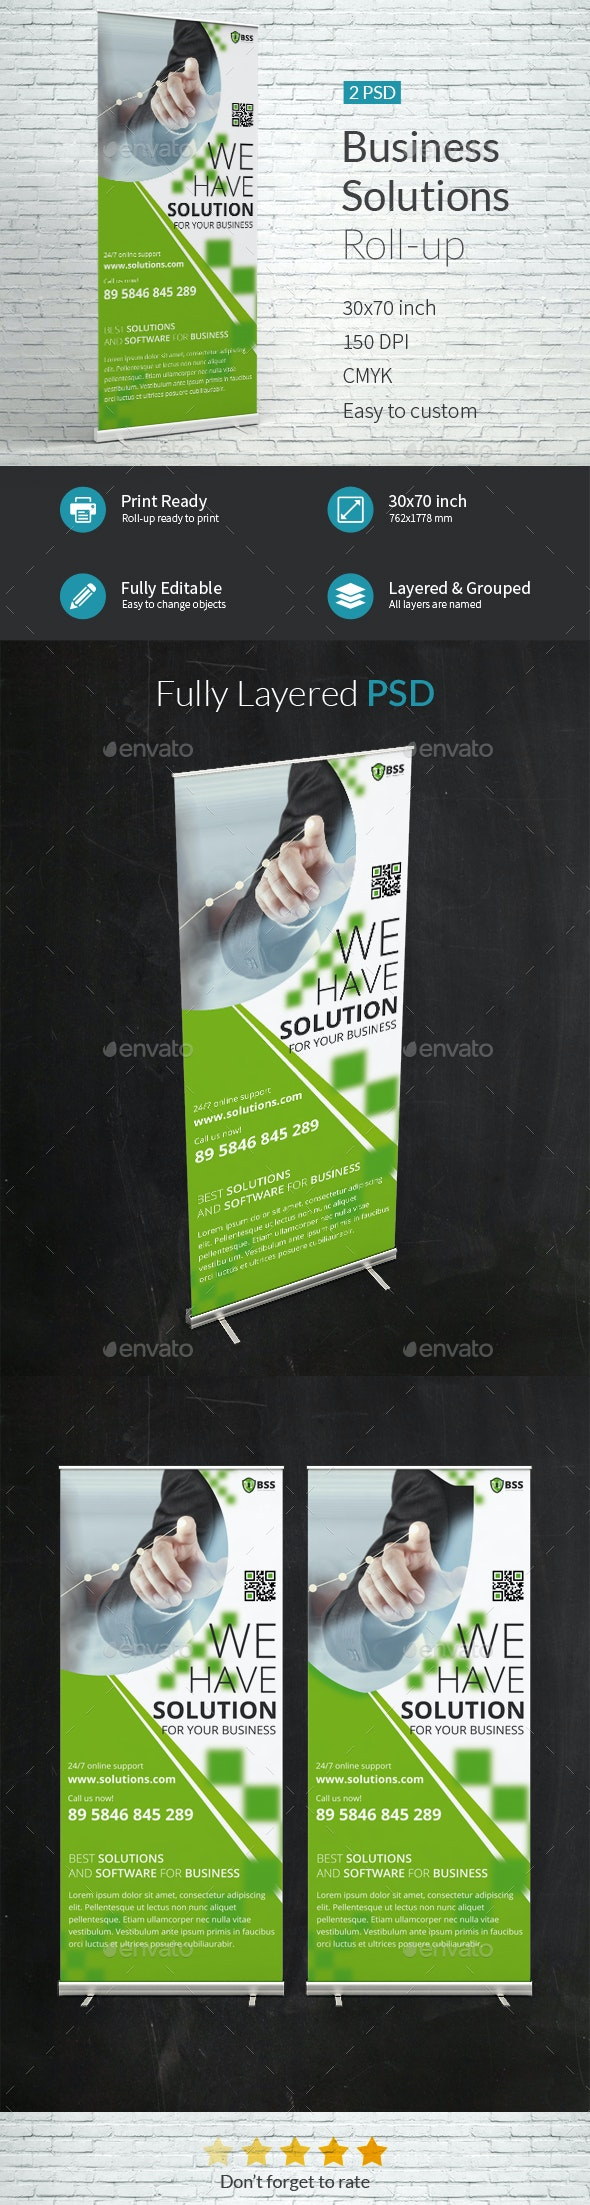 Business Solutions Company Roll-up Template - Signage Print Templates